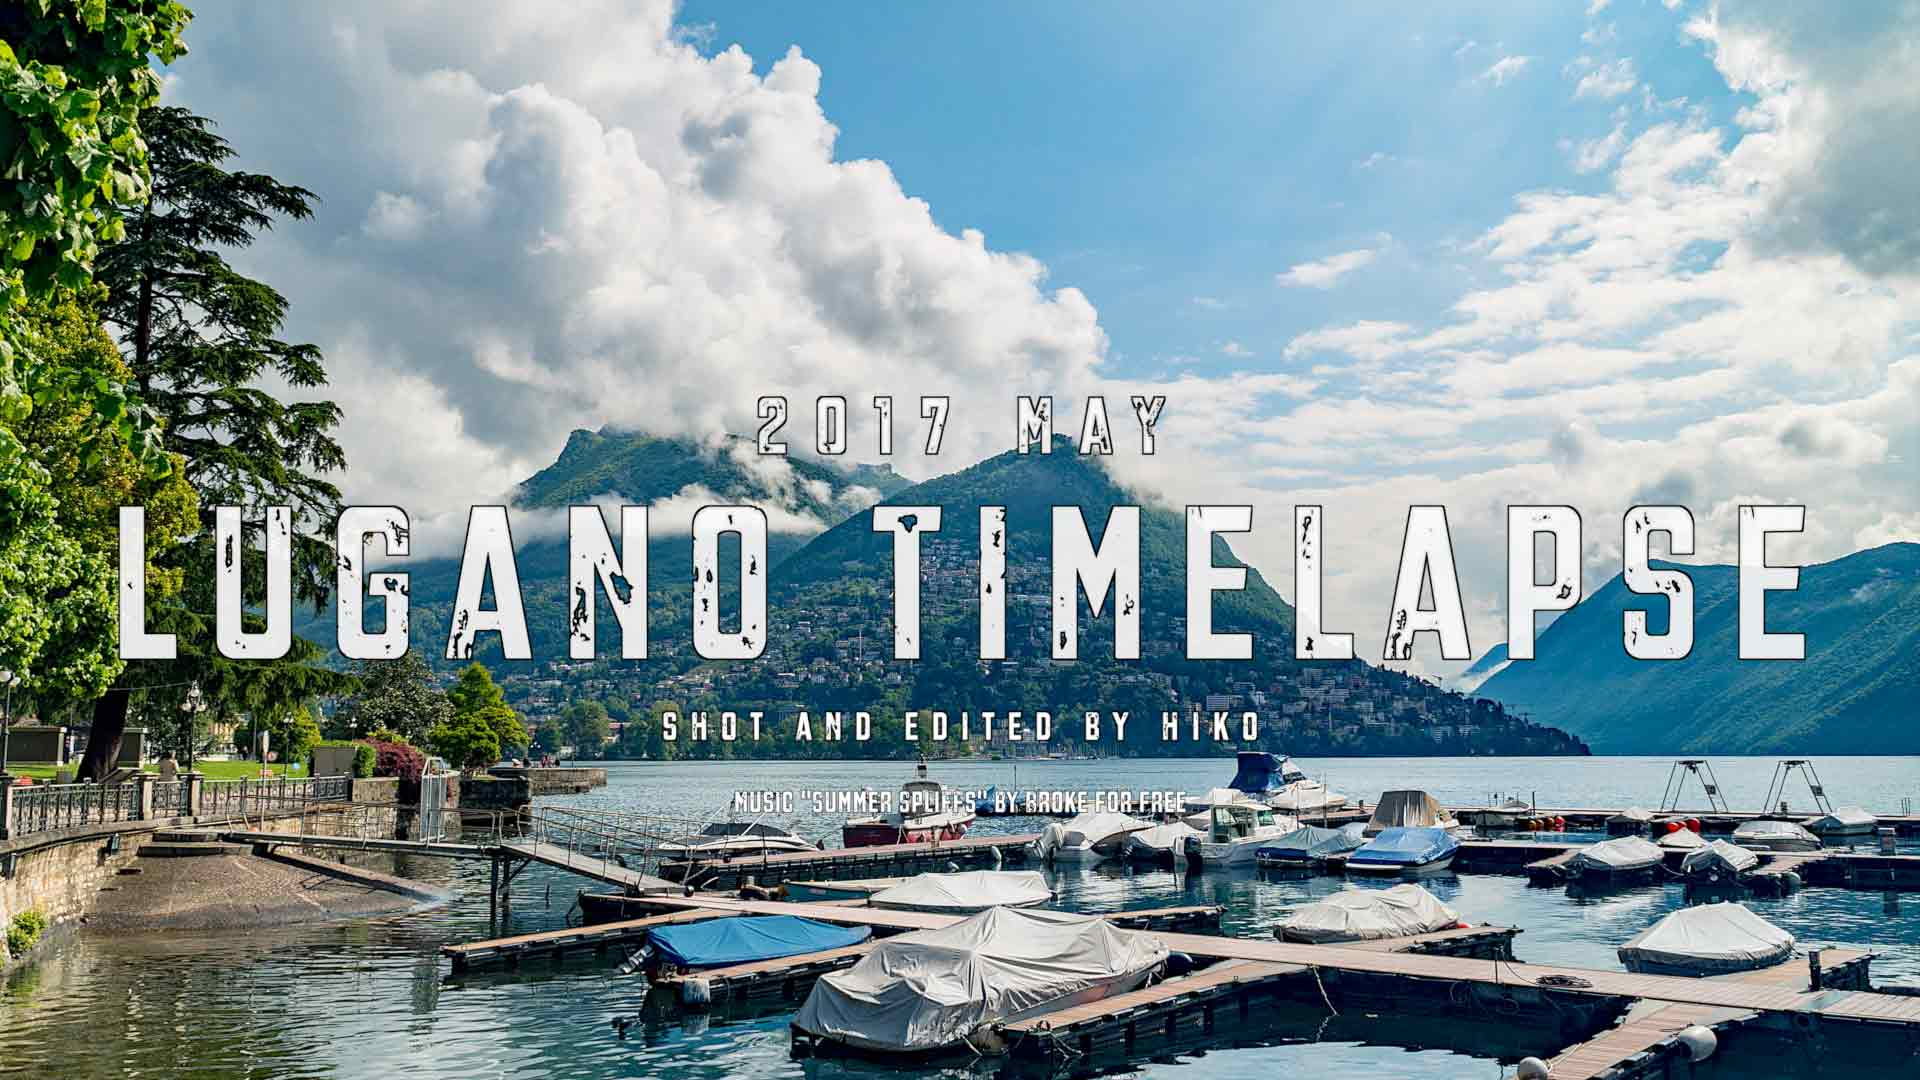 2017-May-Lugano-Timelapse-Featured-Image